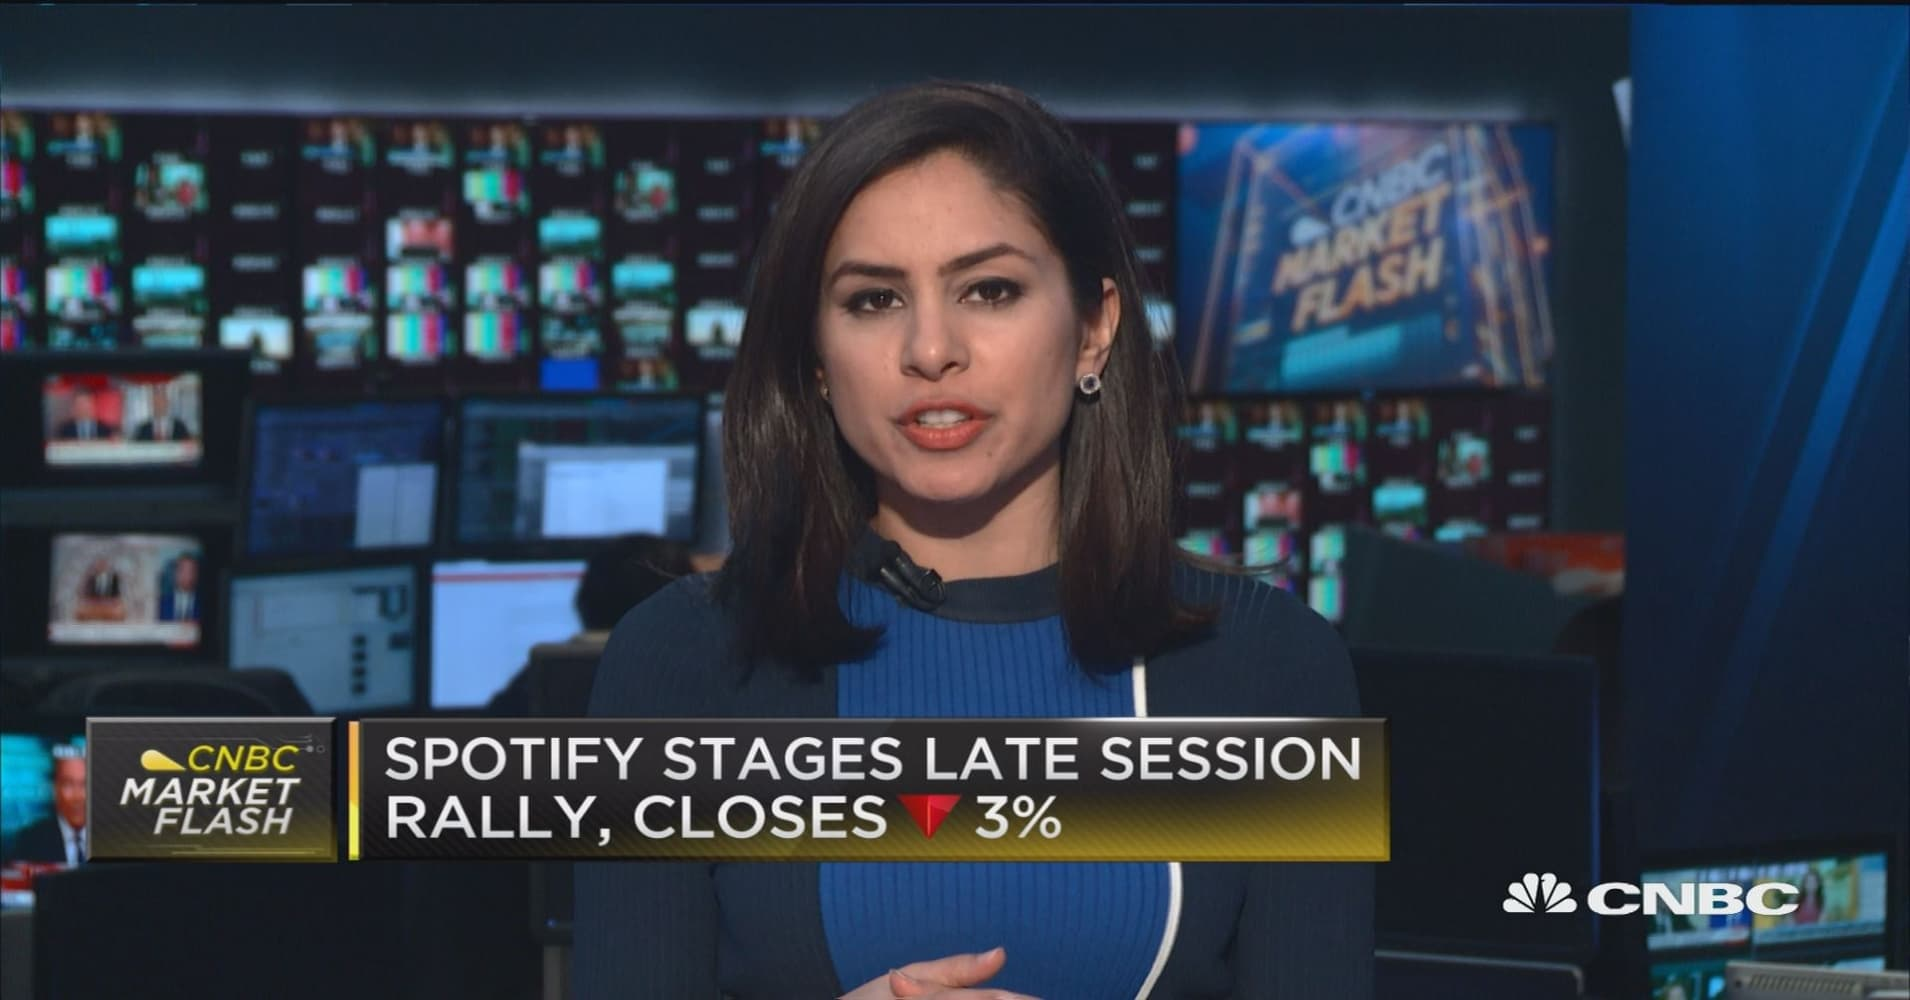 Spotify stages late session rally still closes down 3 malvernweather Images